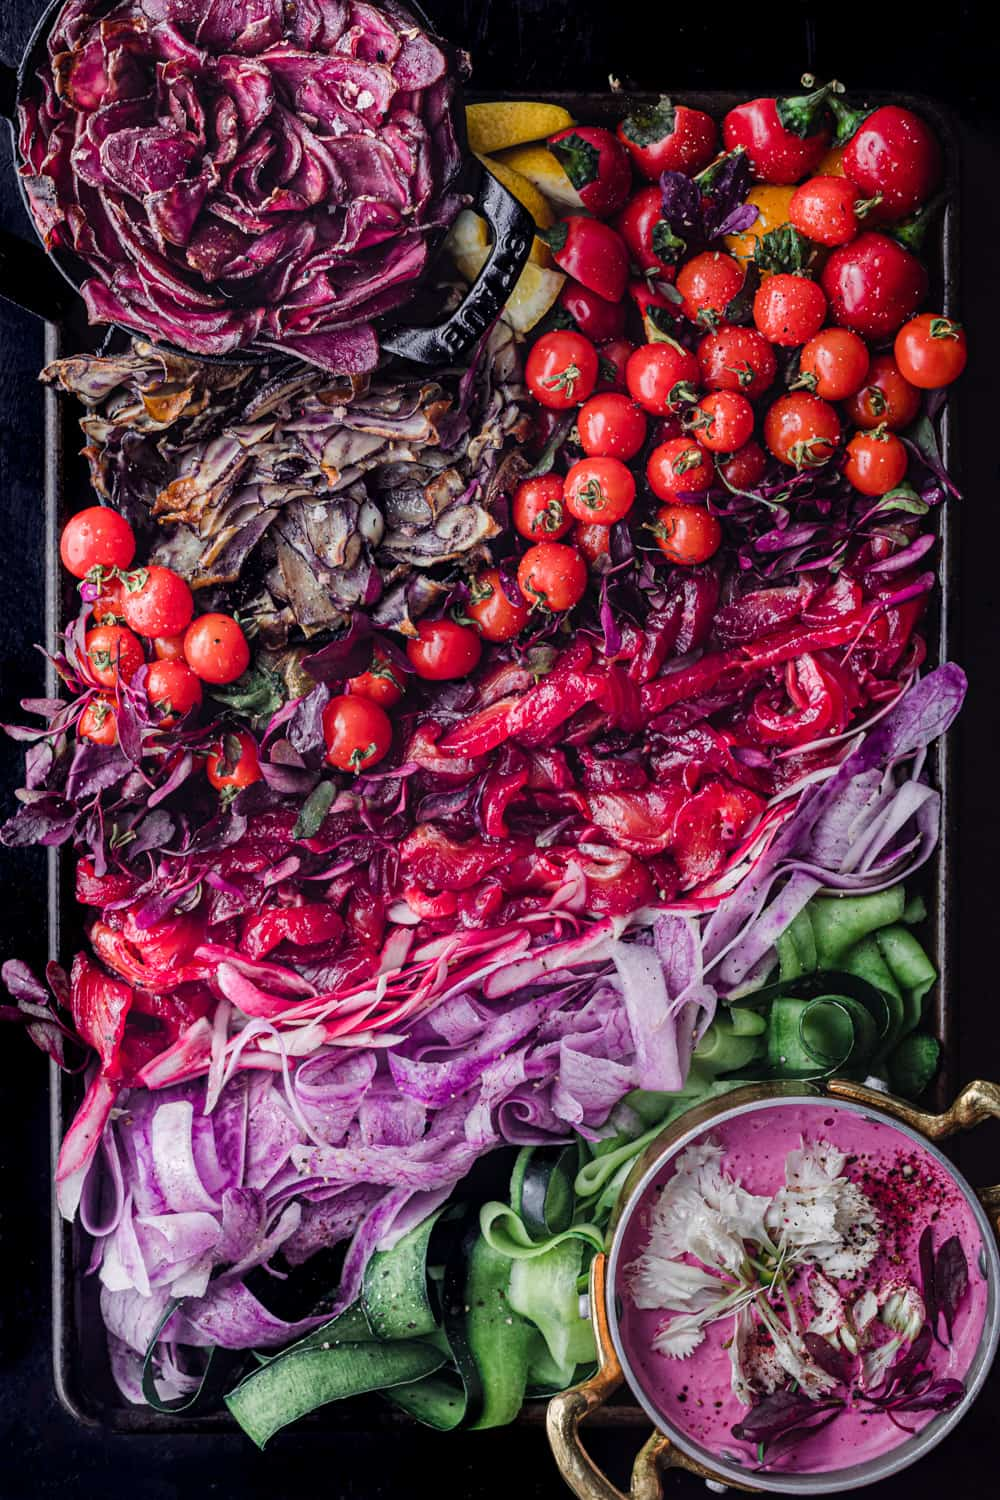 A vibrantly colorful beet cured salmon board with lots of fresh and some cooked seasonal produce; overhead shot on a black background.